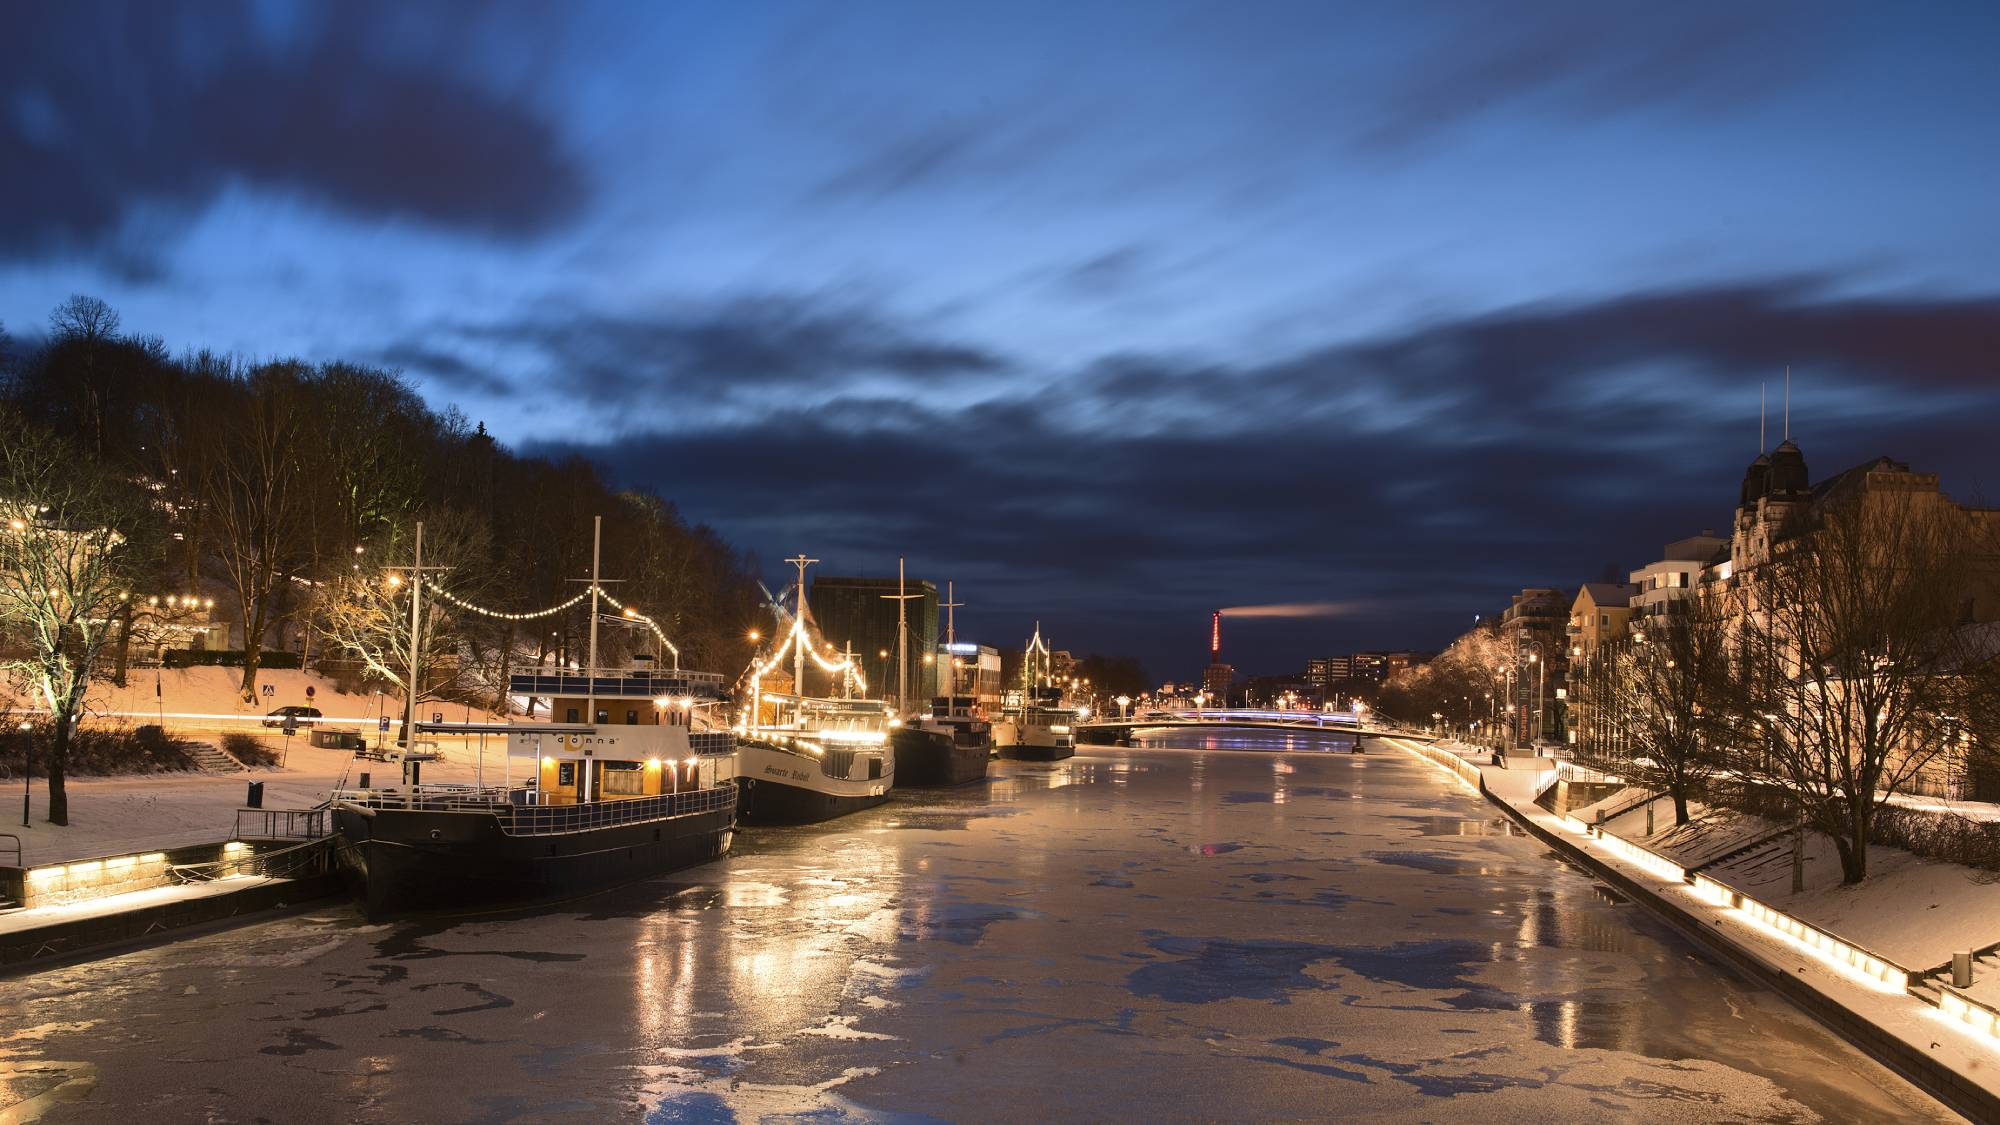 Boats by a partly frozen river at night time.